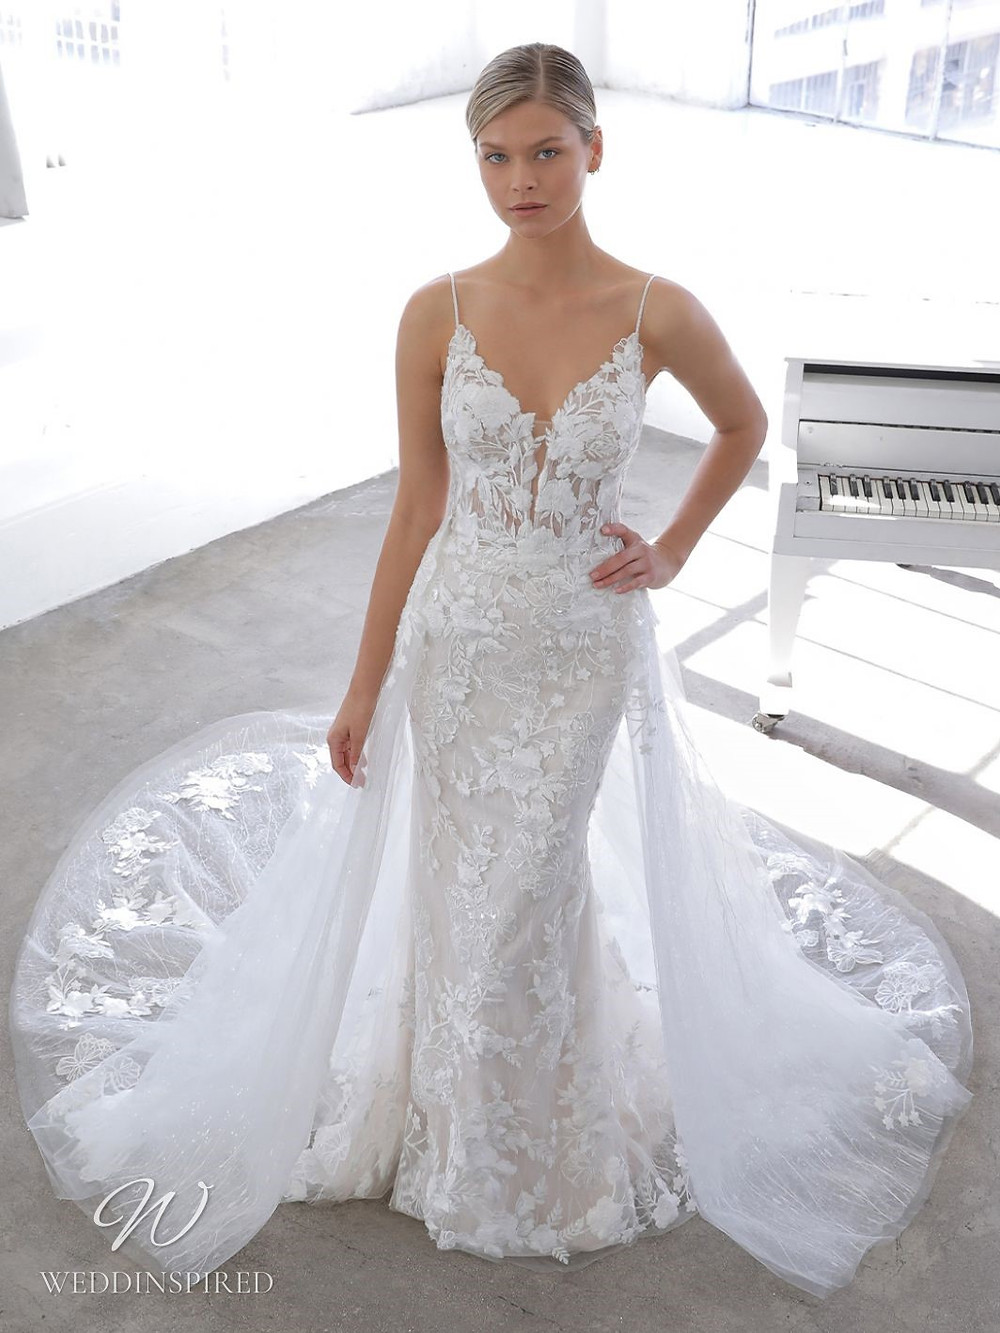 A Blue by Enzoani 2021 lace mermaid wedding dress with straps, a v neck and a detachable skirt